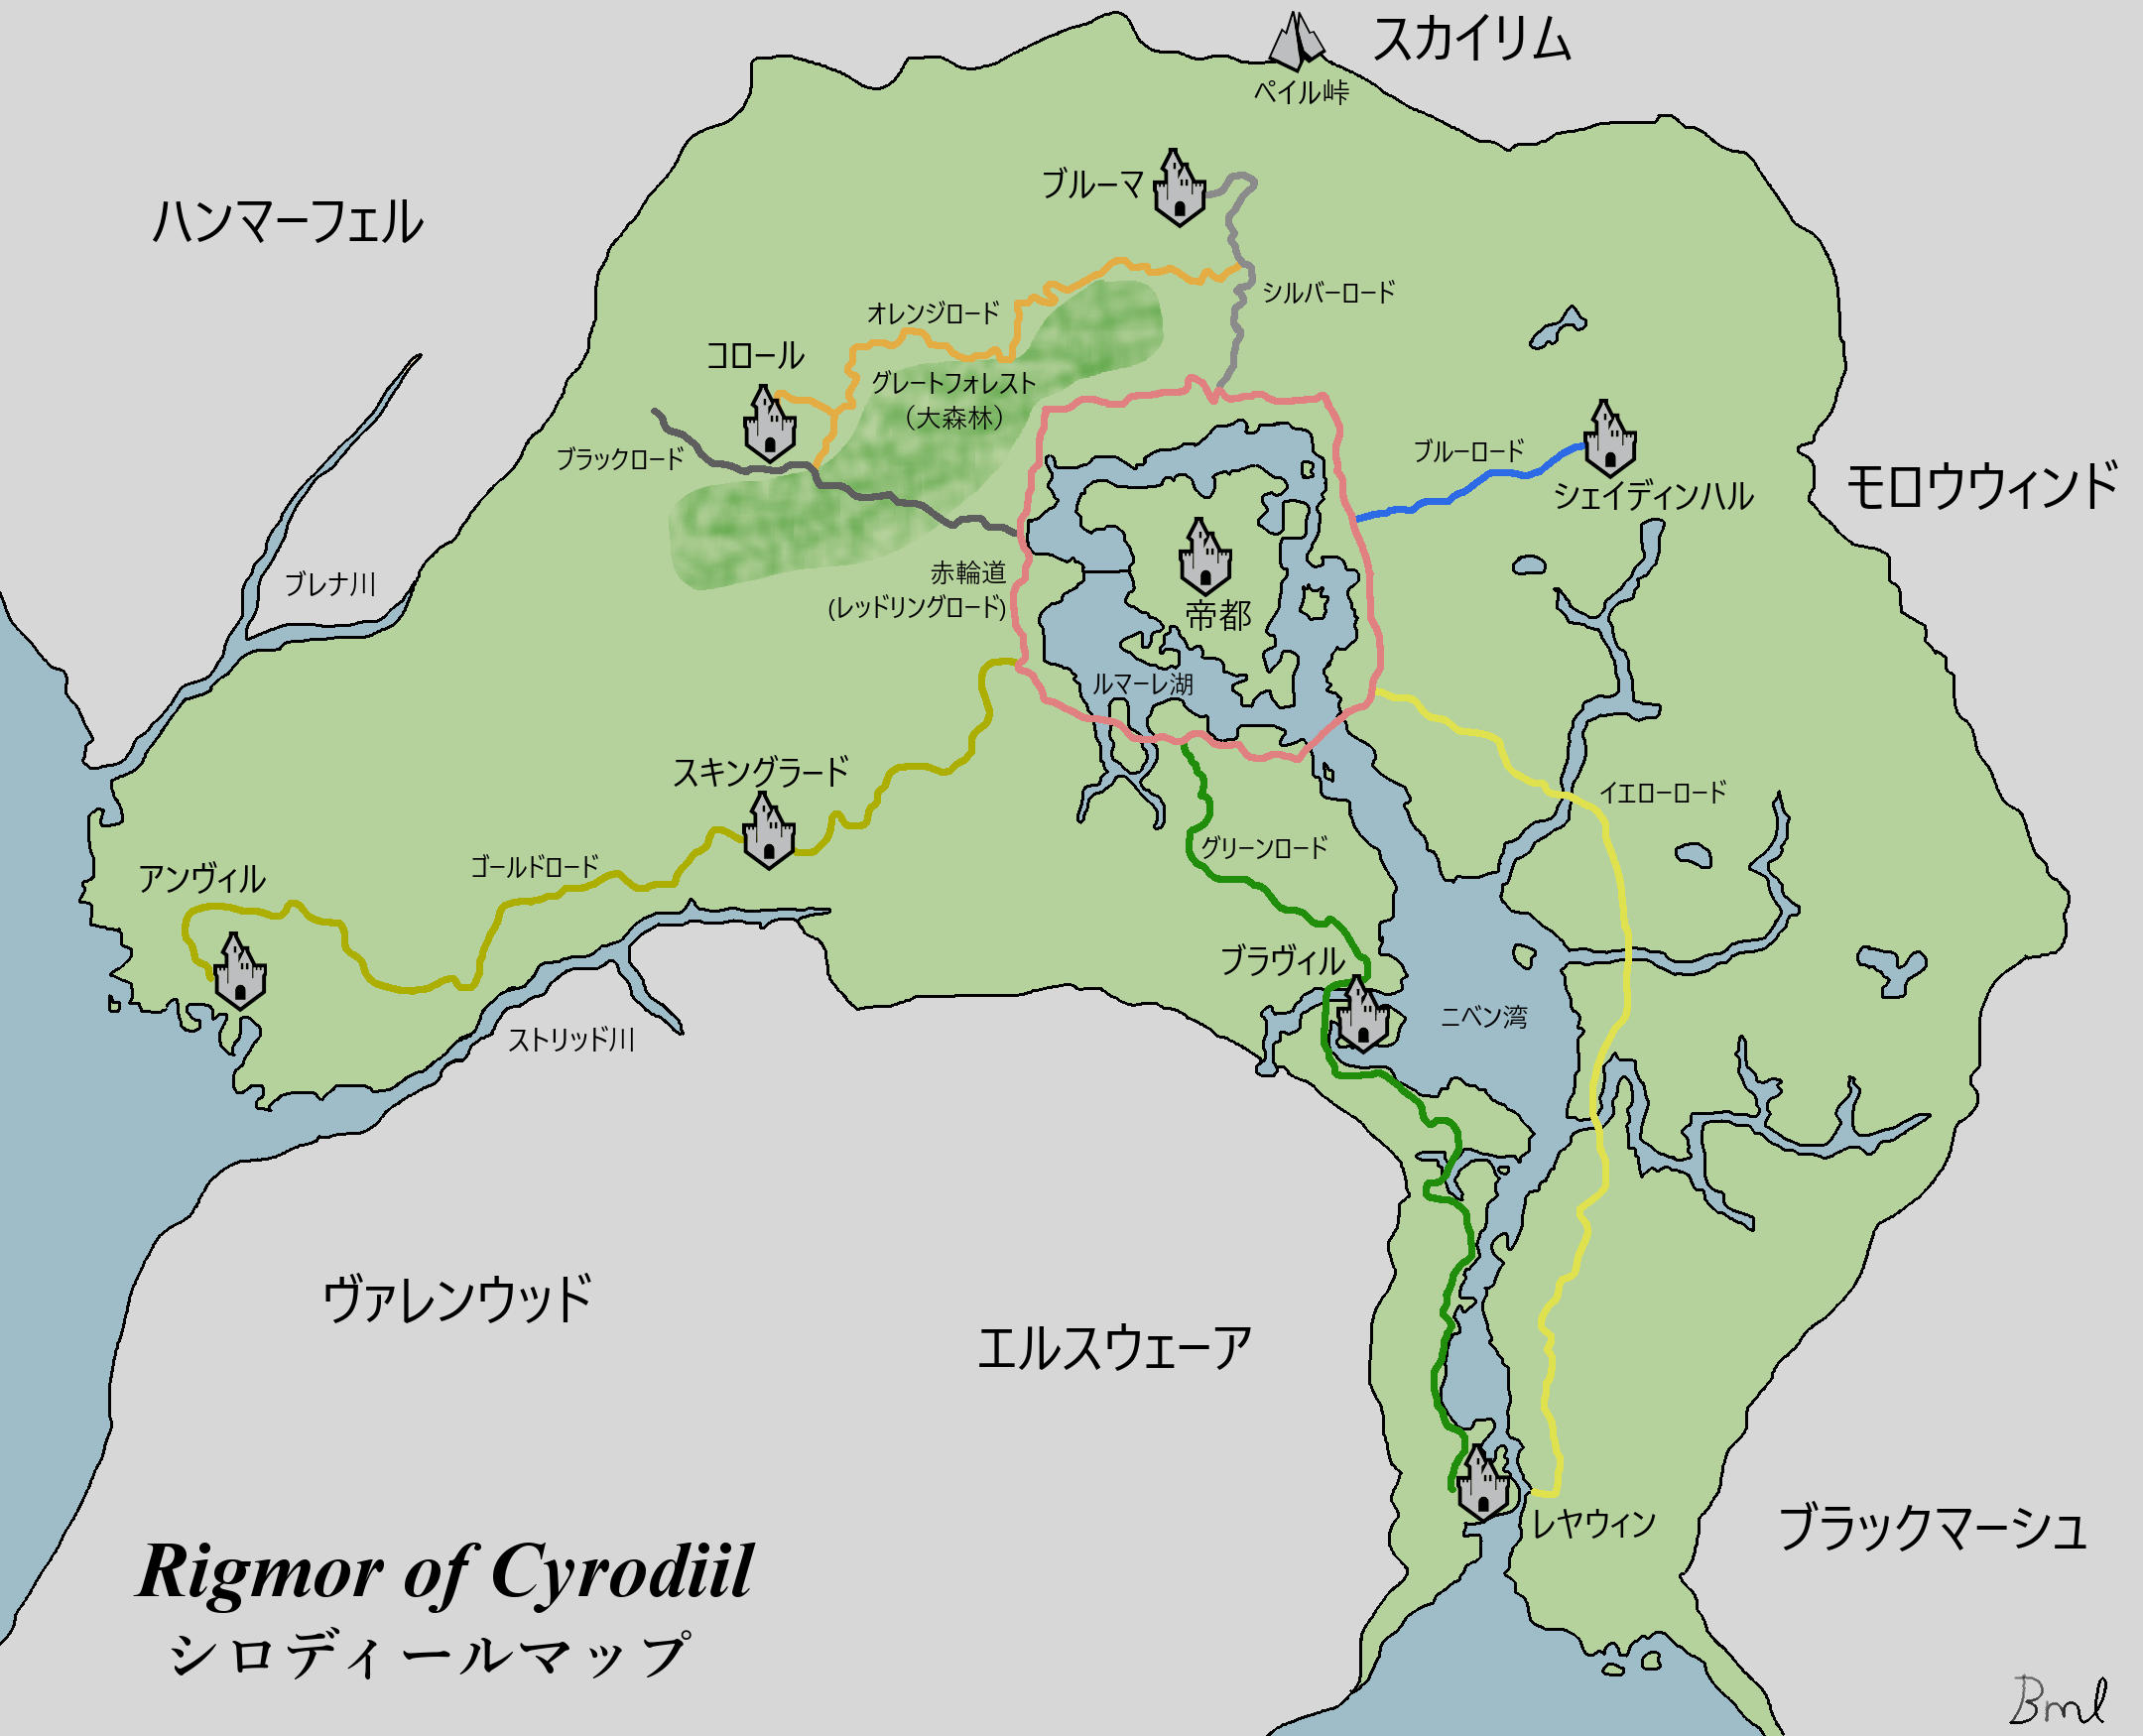 Rigmor of Cyrodiil SE - Japanese at Skyrim Special Edition